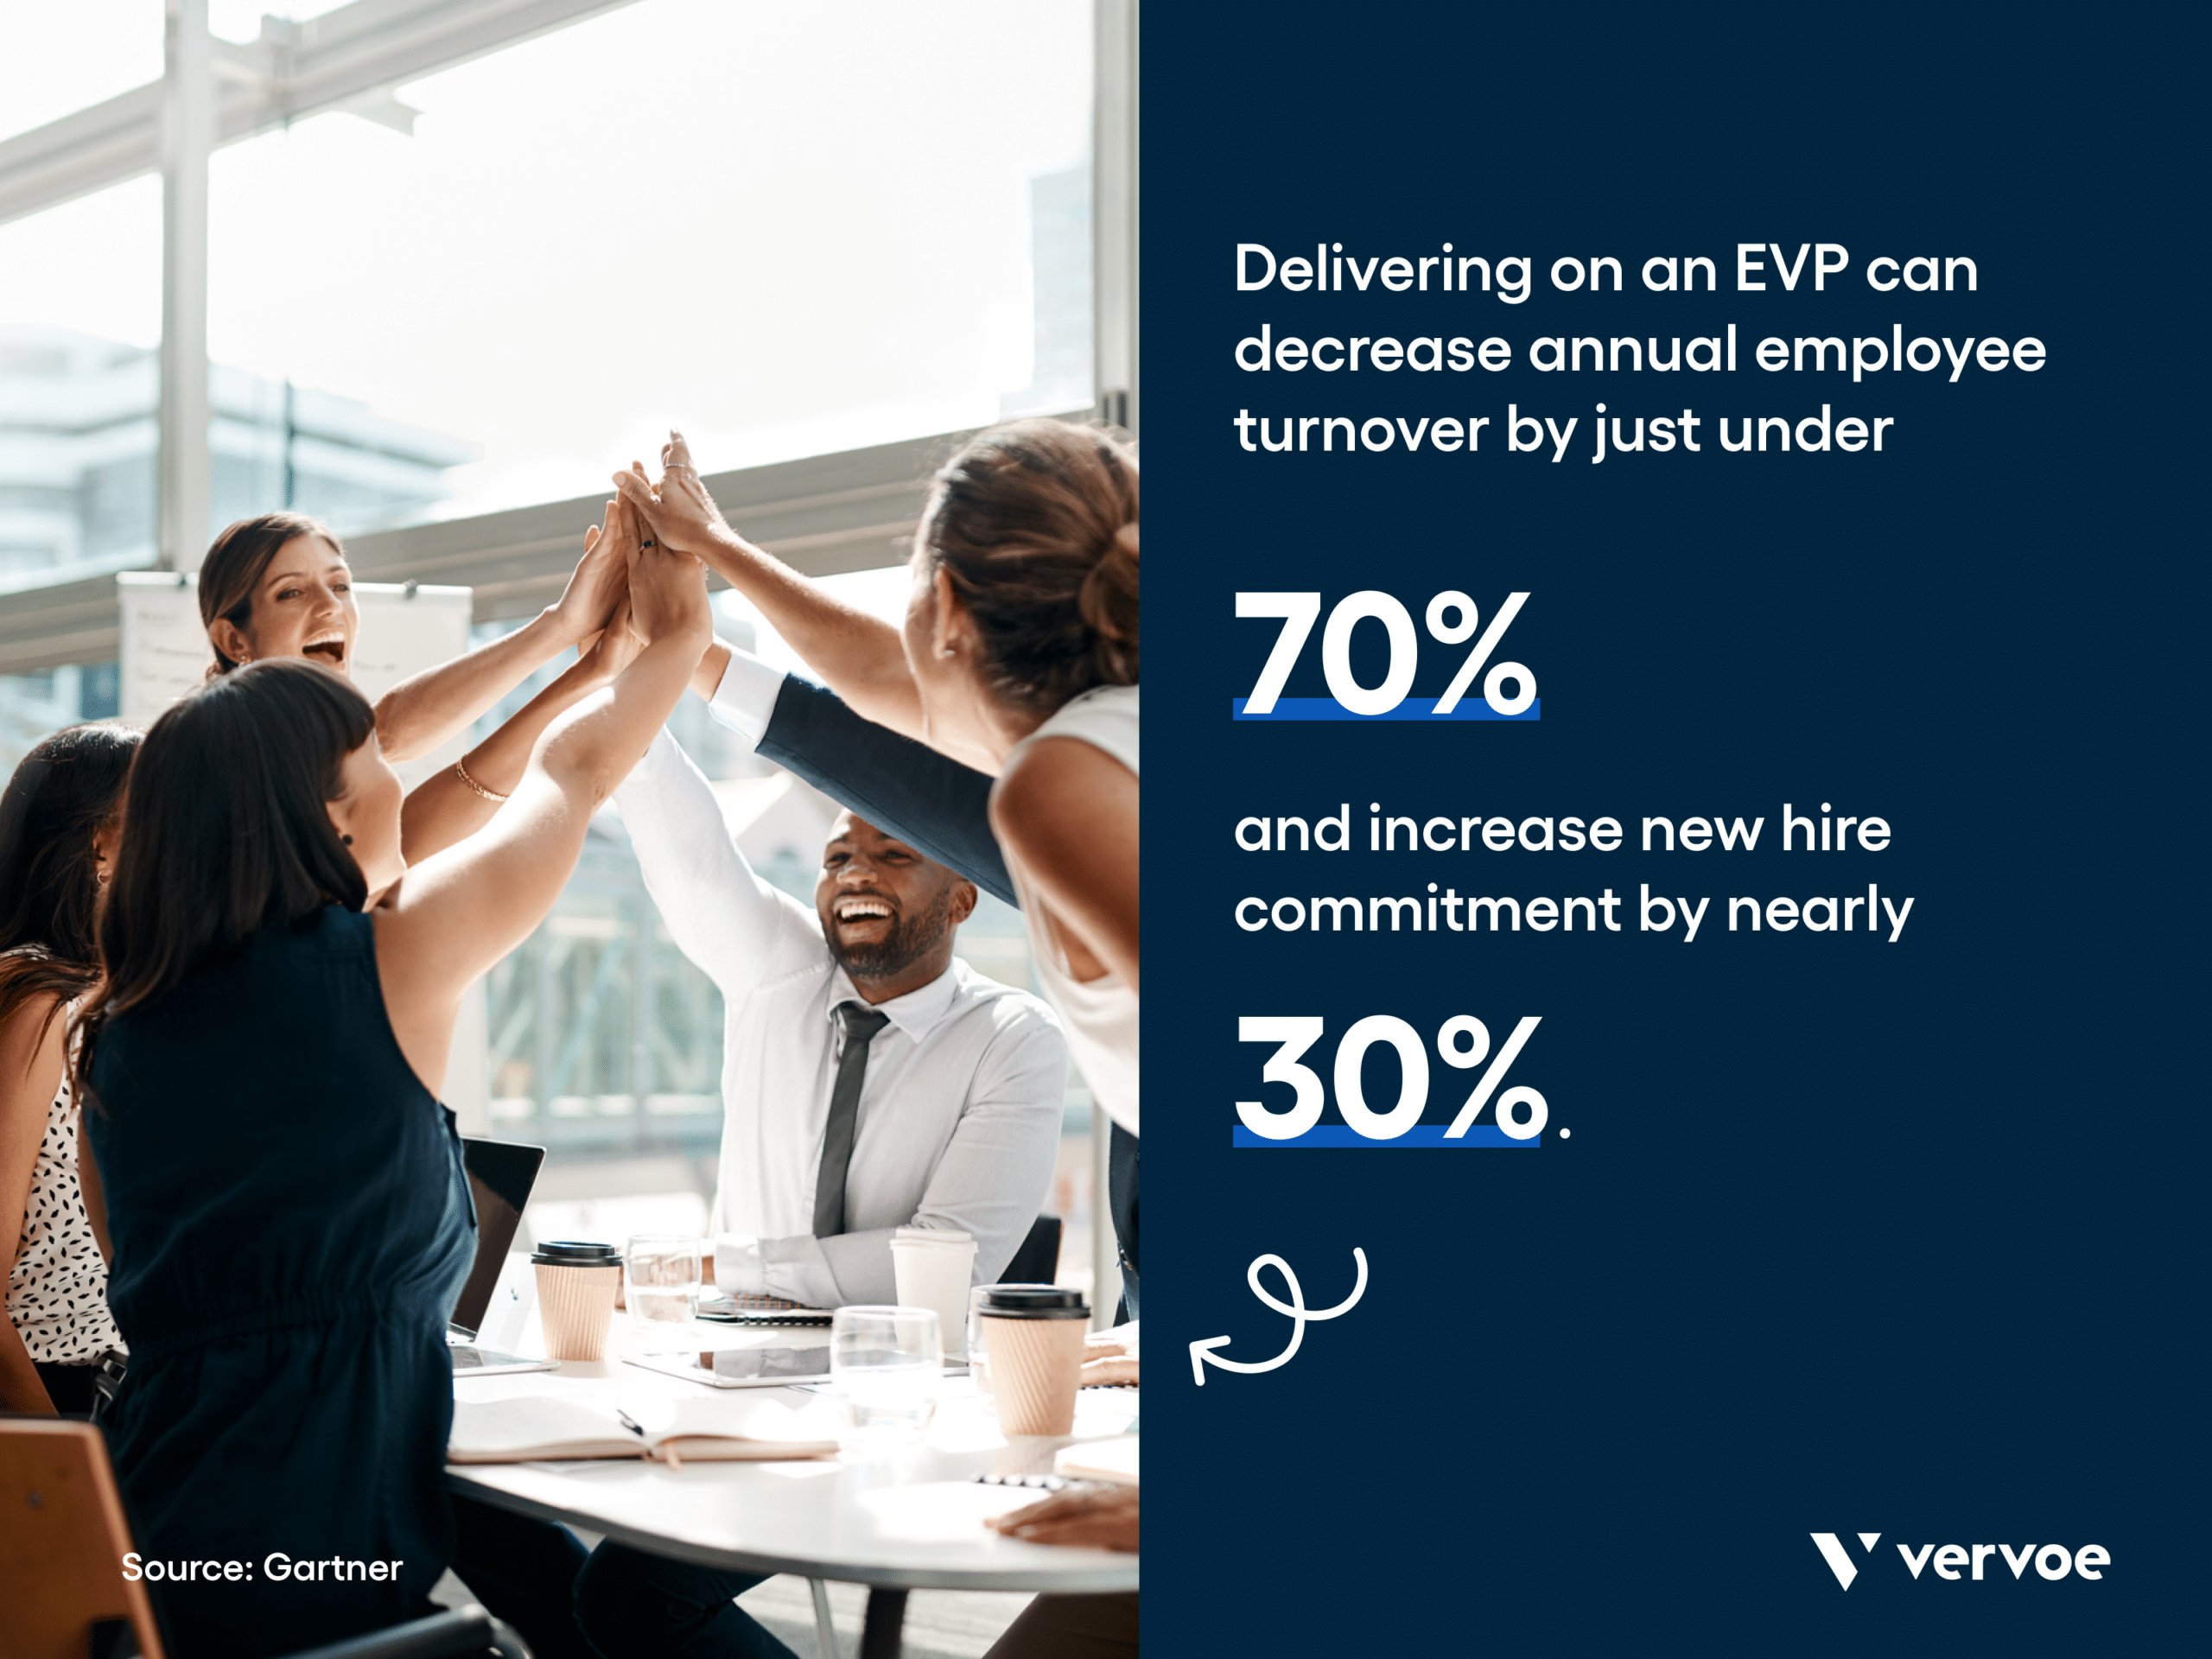 Infographic showing how evps can decrease employee turnover and increase new hire commitment